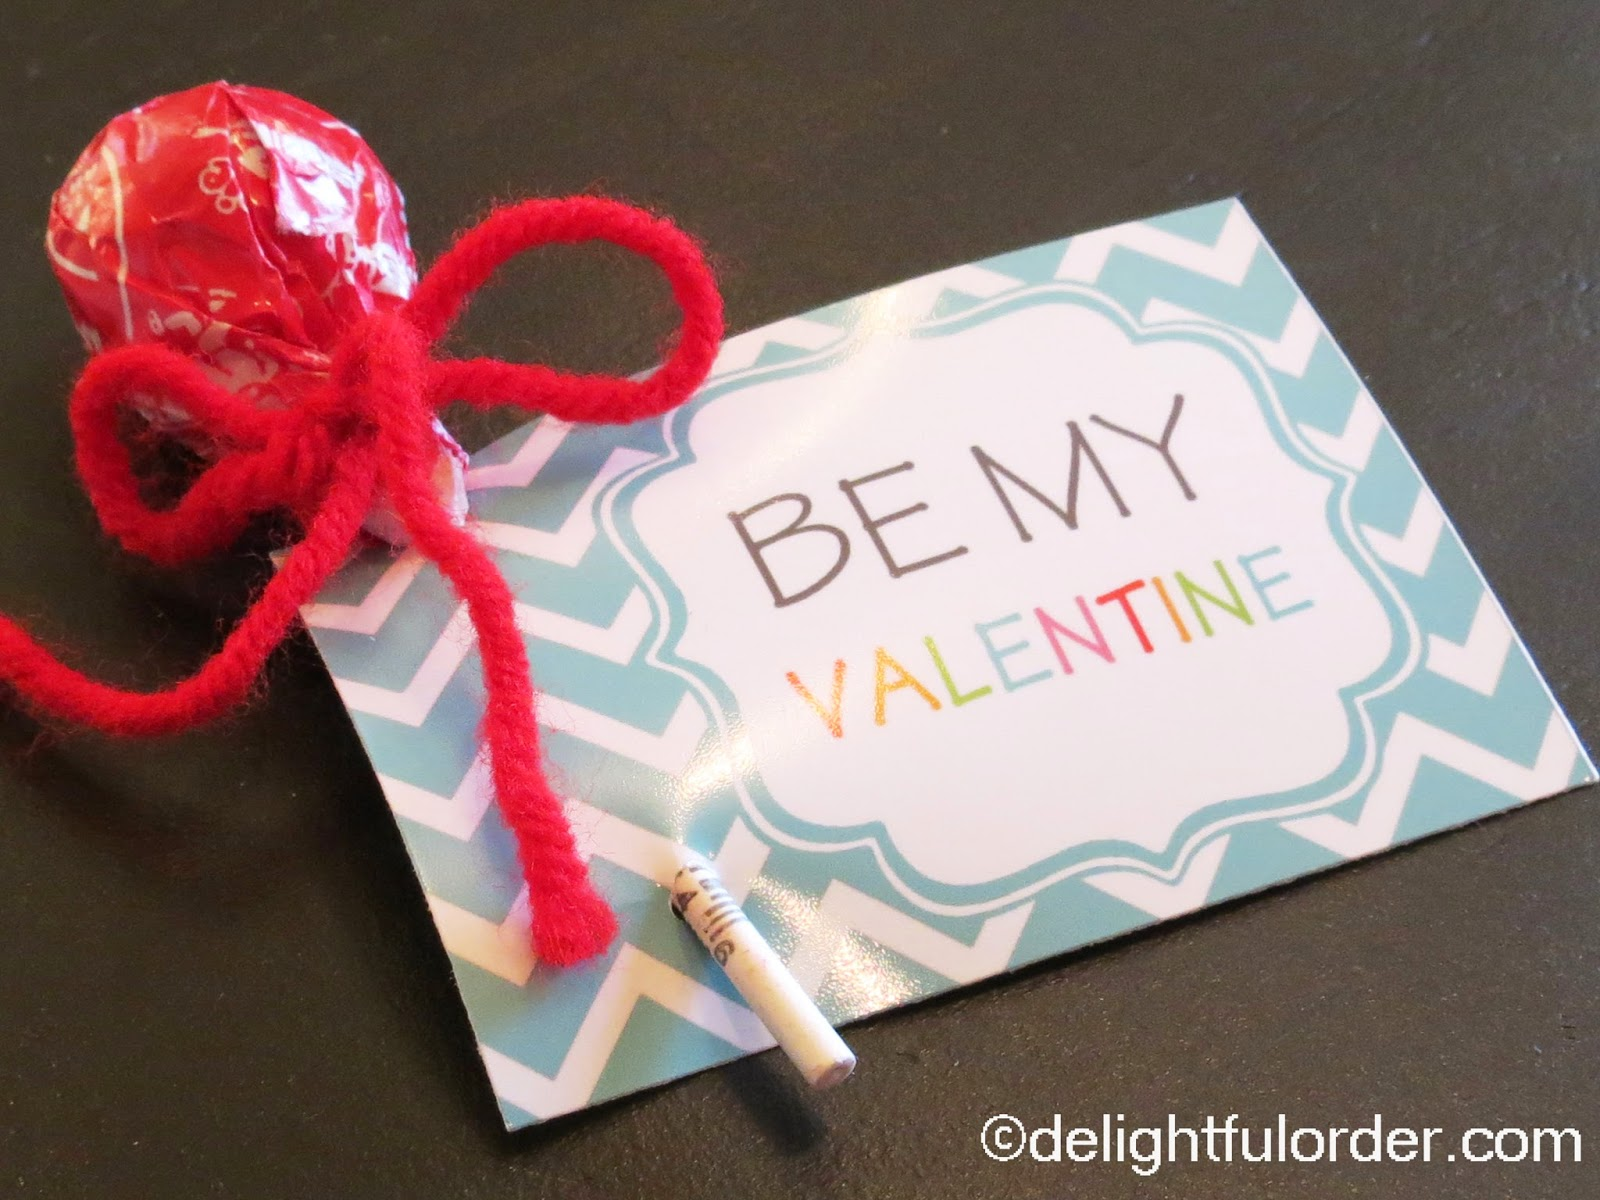 http://blog.delightfulorder.com/2014/02/free-printable-valentines-day-tags.html